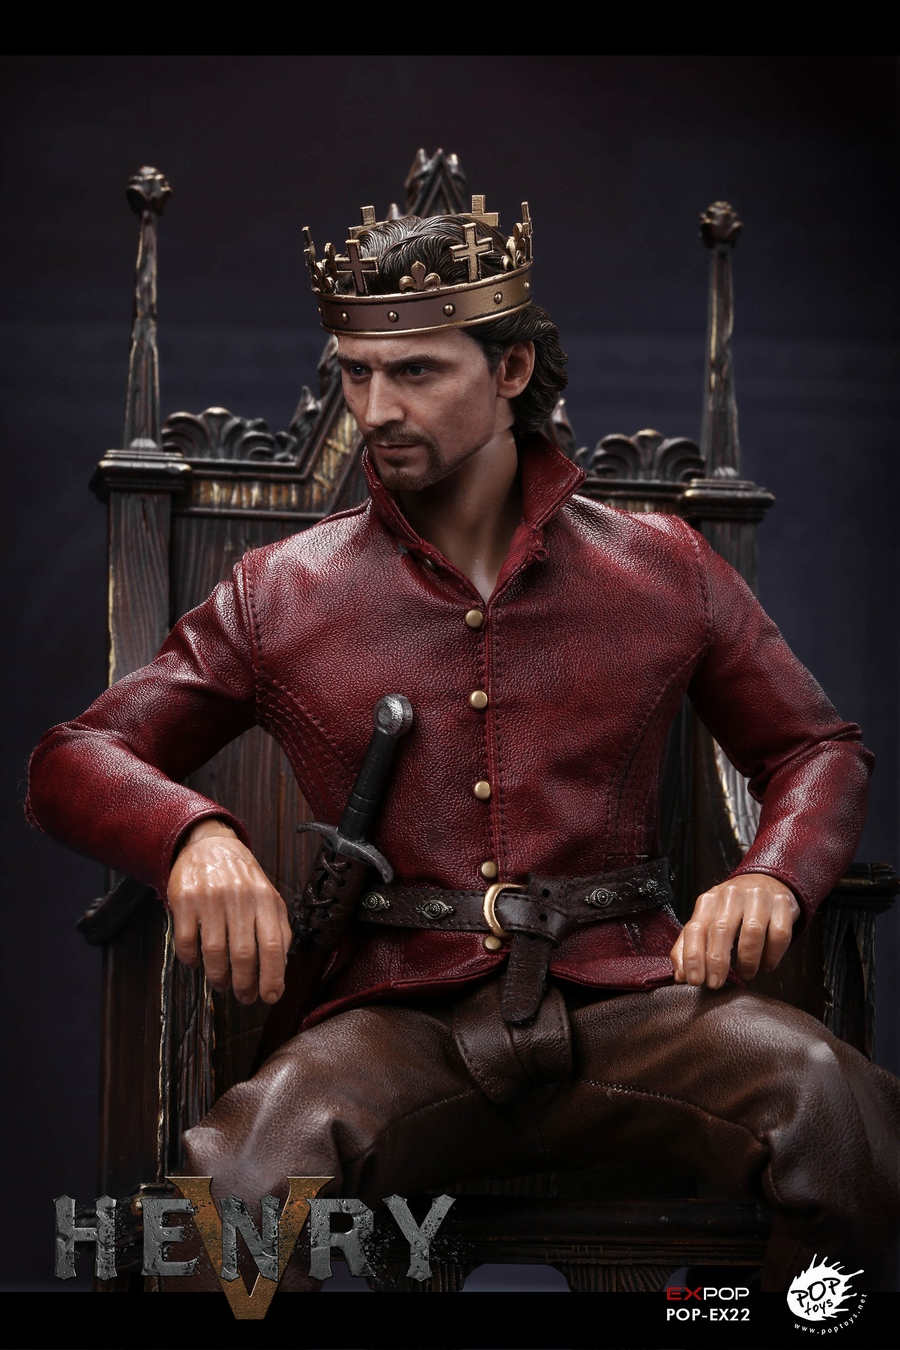 TVbased - NEW PRODUCT: POPTOYS [WF2019 Shanghai Conference Edition]: 1/6 King of England - Henry V [The Throne Edition] POP-EX22 17592111